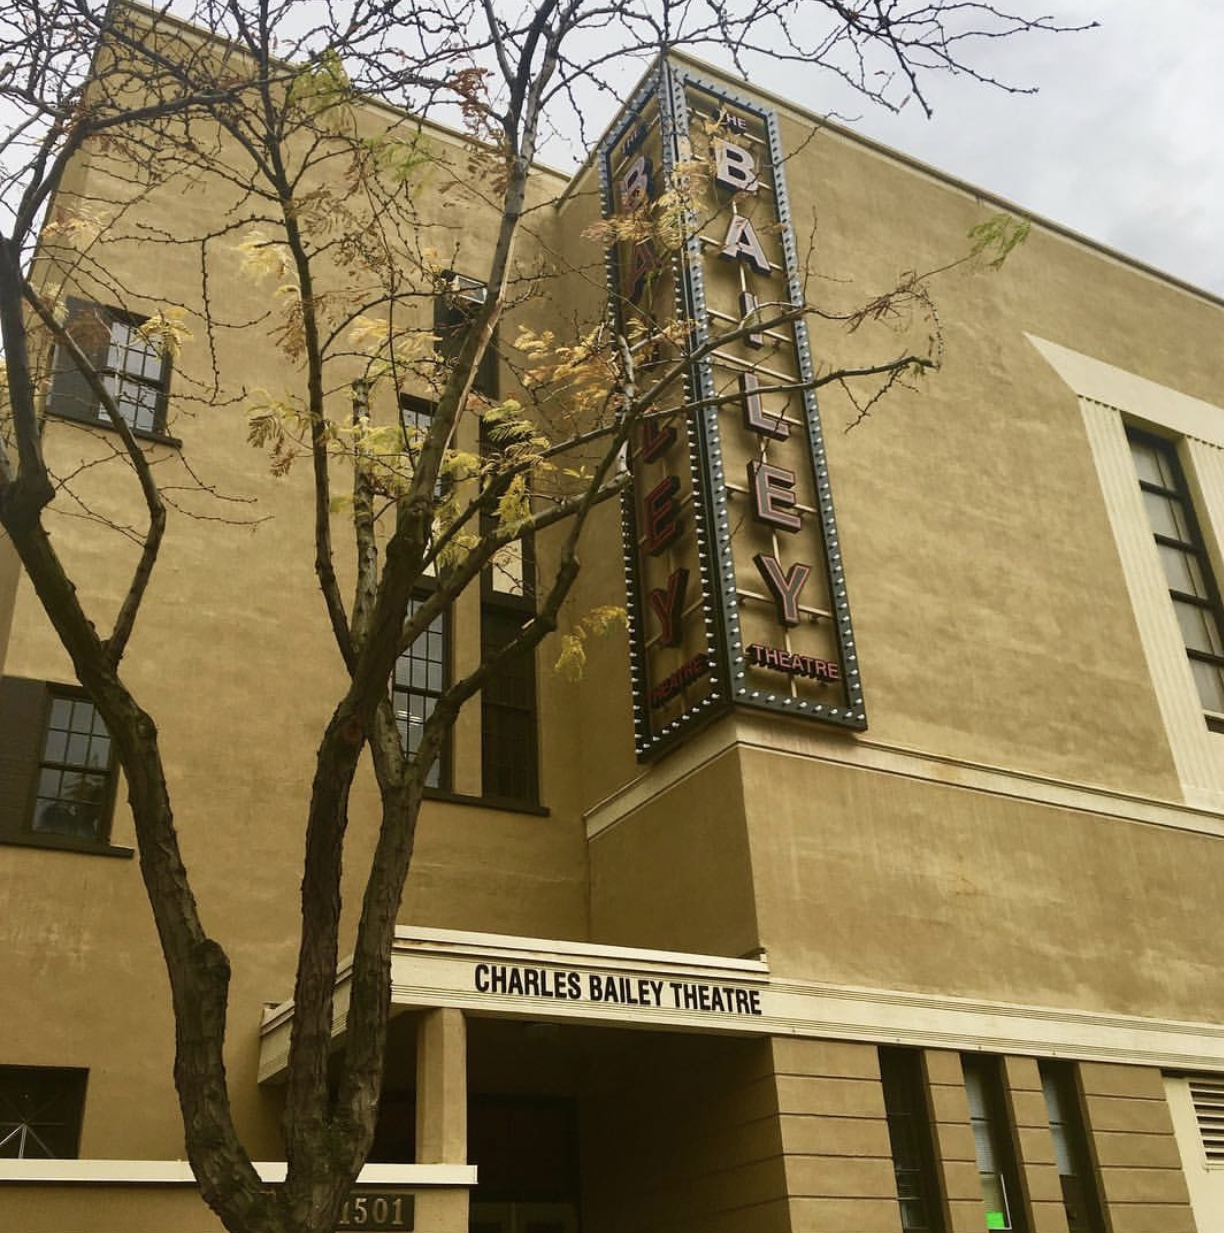 The Charles Bailey Theatre